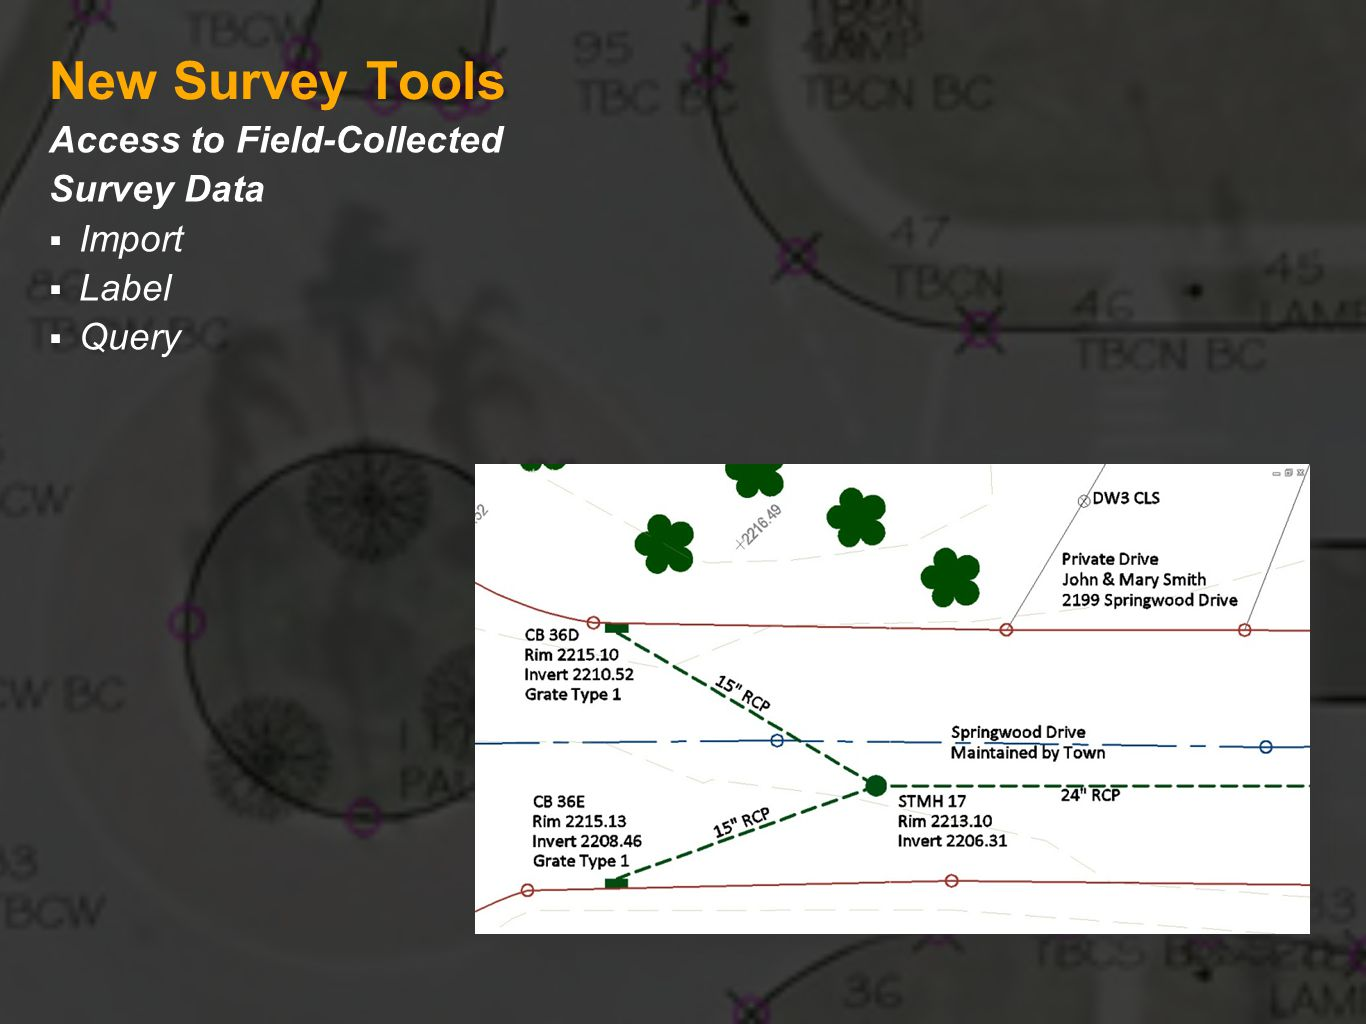 New Survey Tools Access to Field-Collected Survey Data Import Label Query